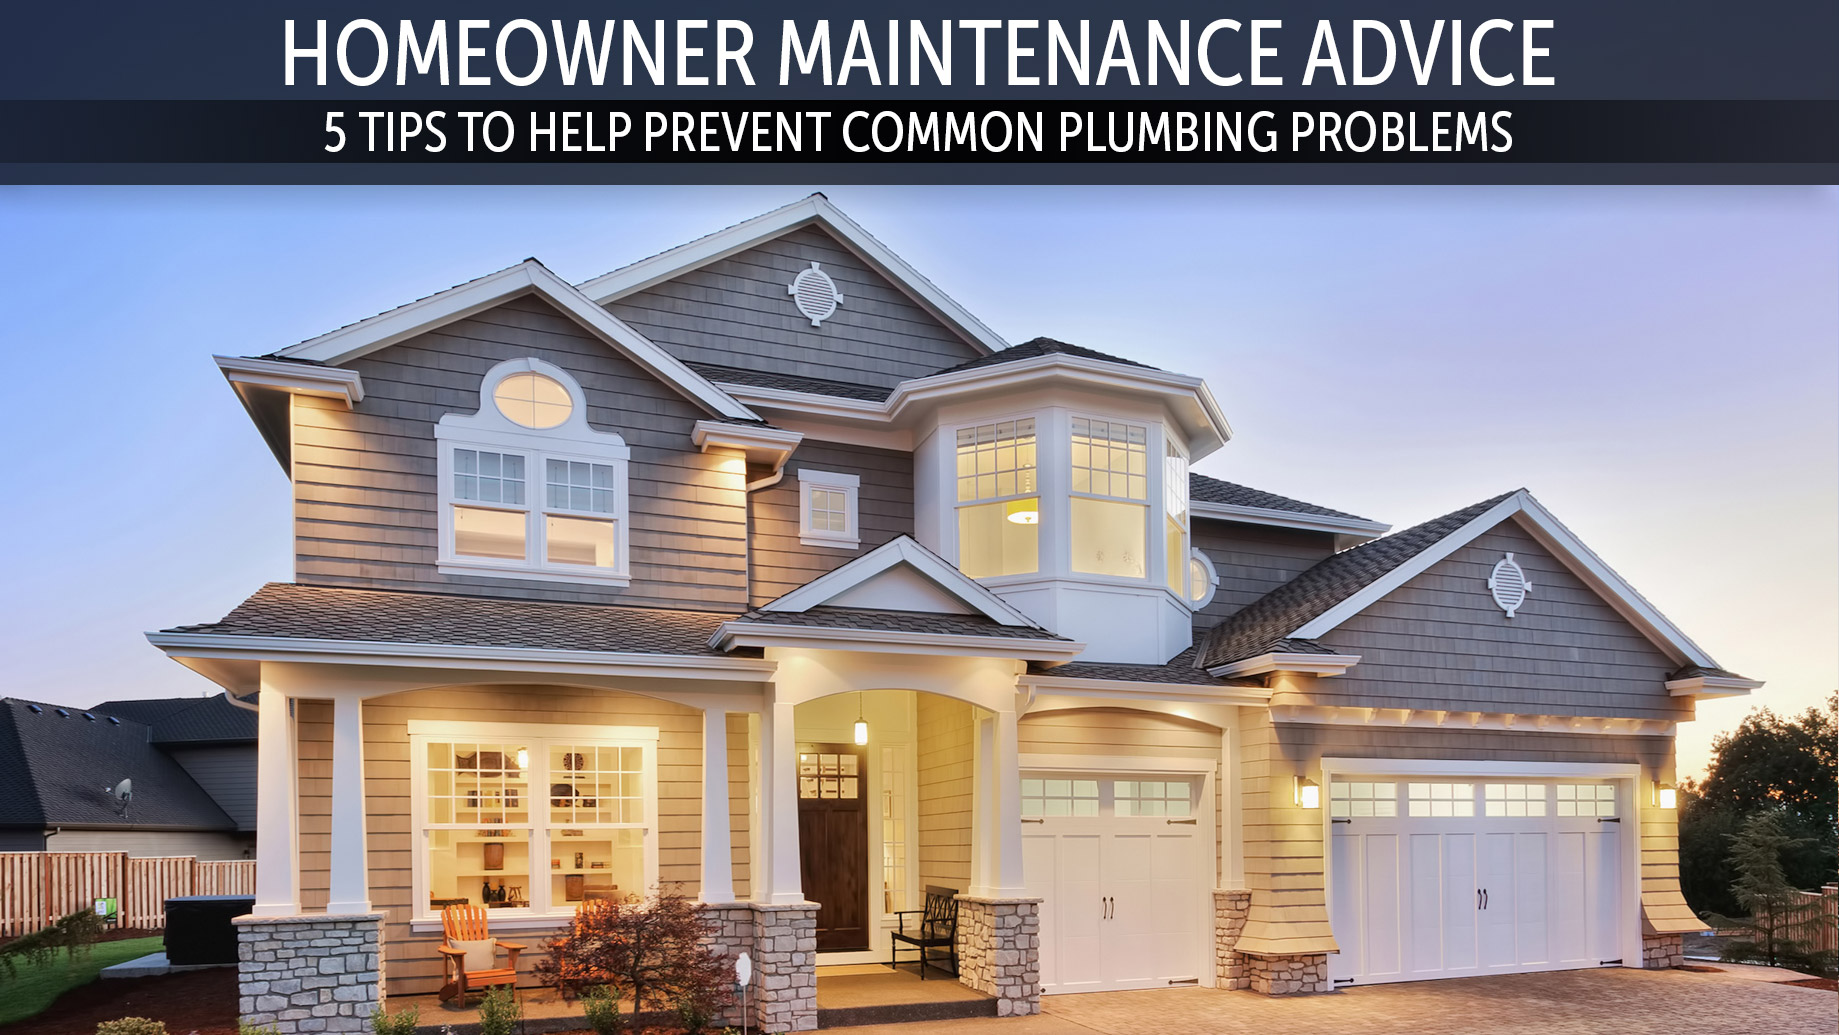 Homeowner Maintenance Advice Advise - 5 Tips to Help Prevent Common Plumbing Problems